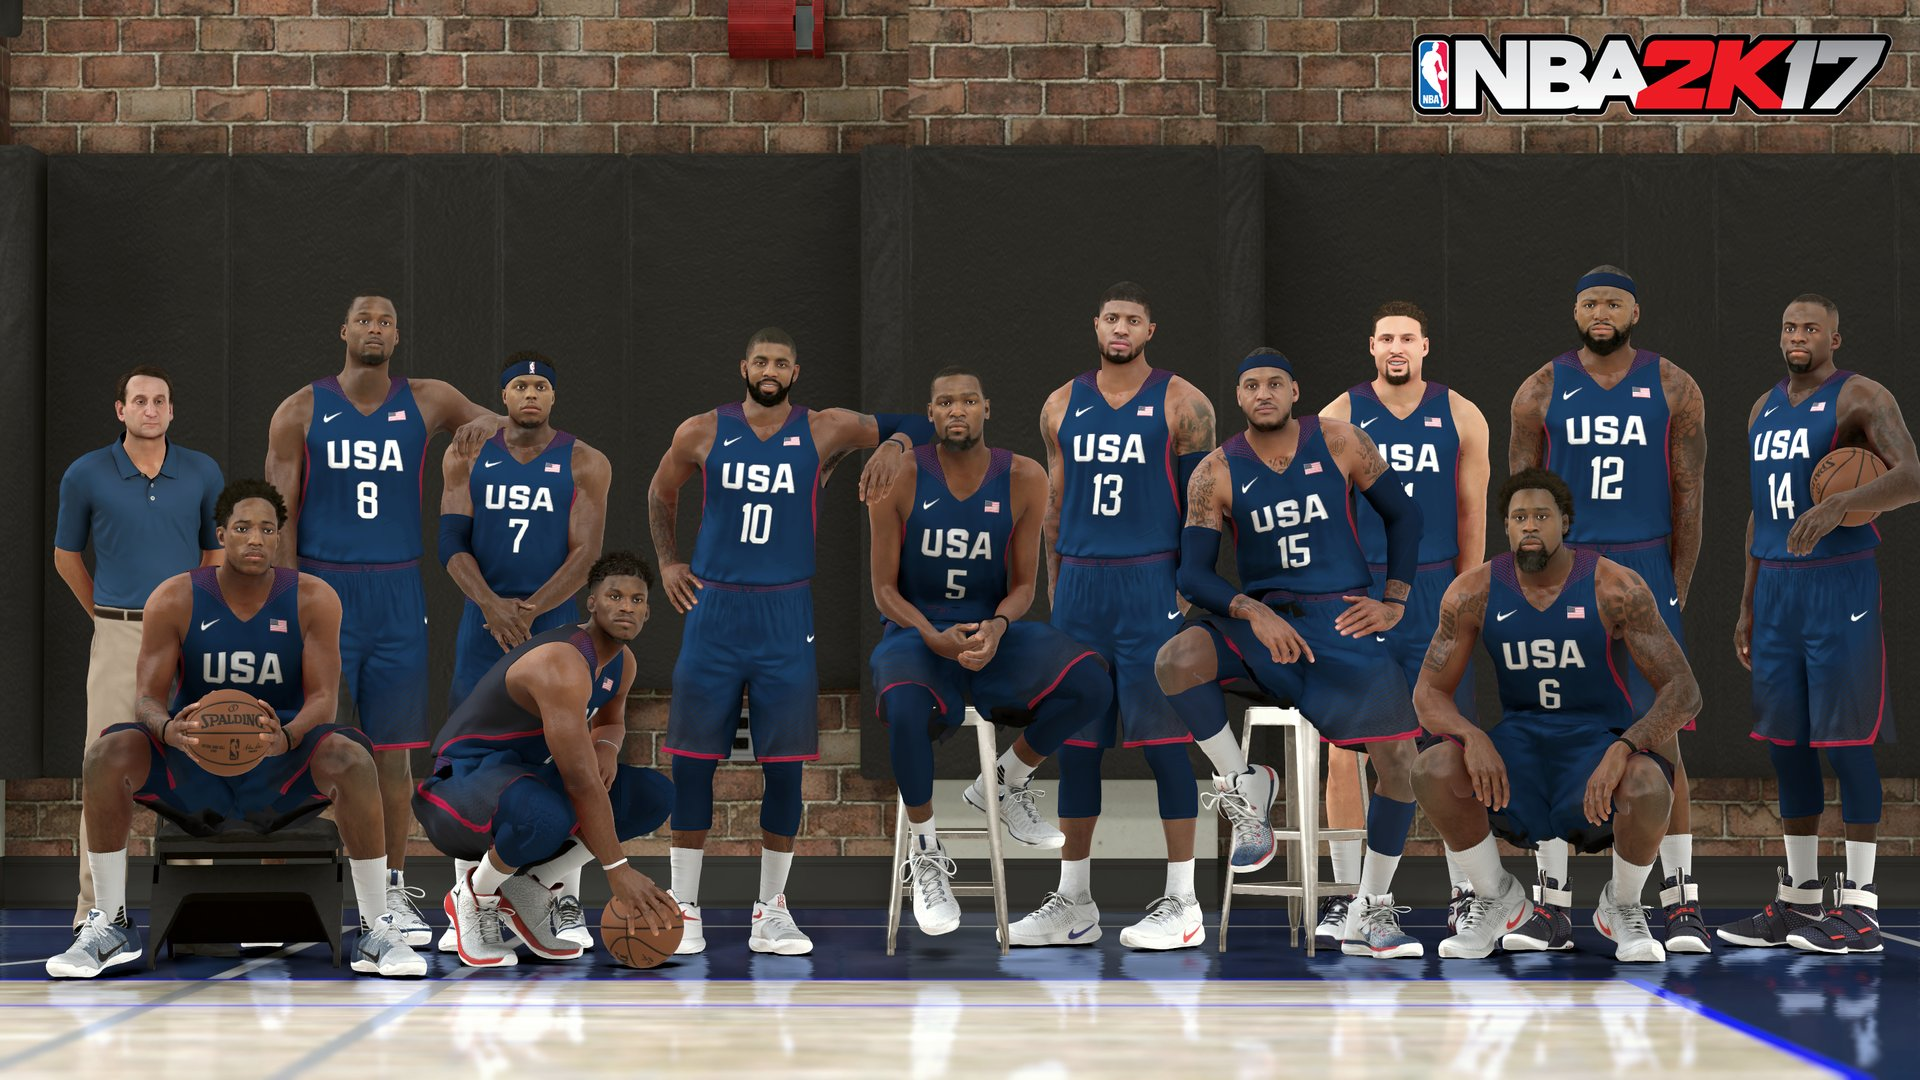 NBA 2K17 Team USA Rio Olympics